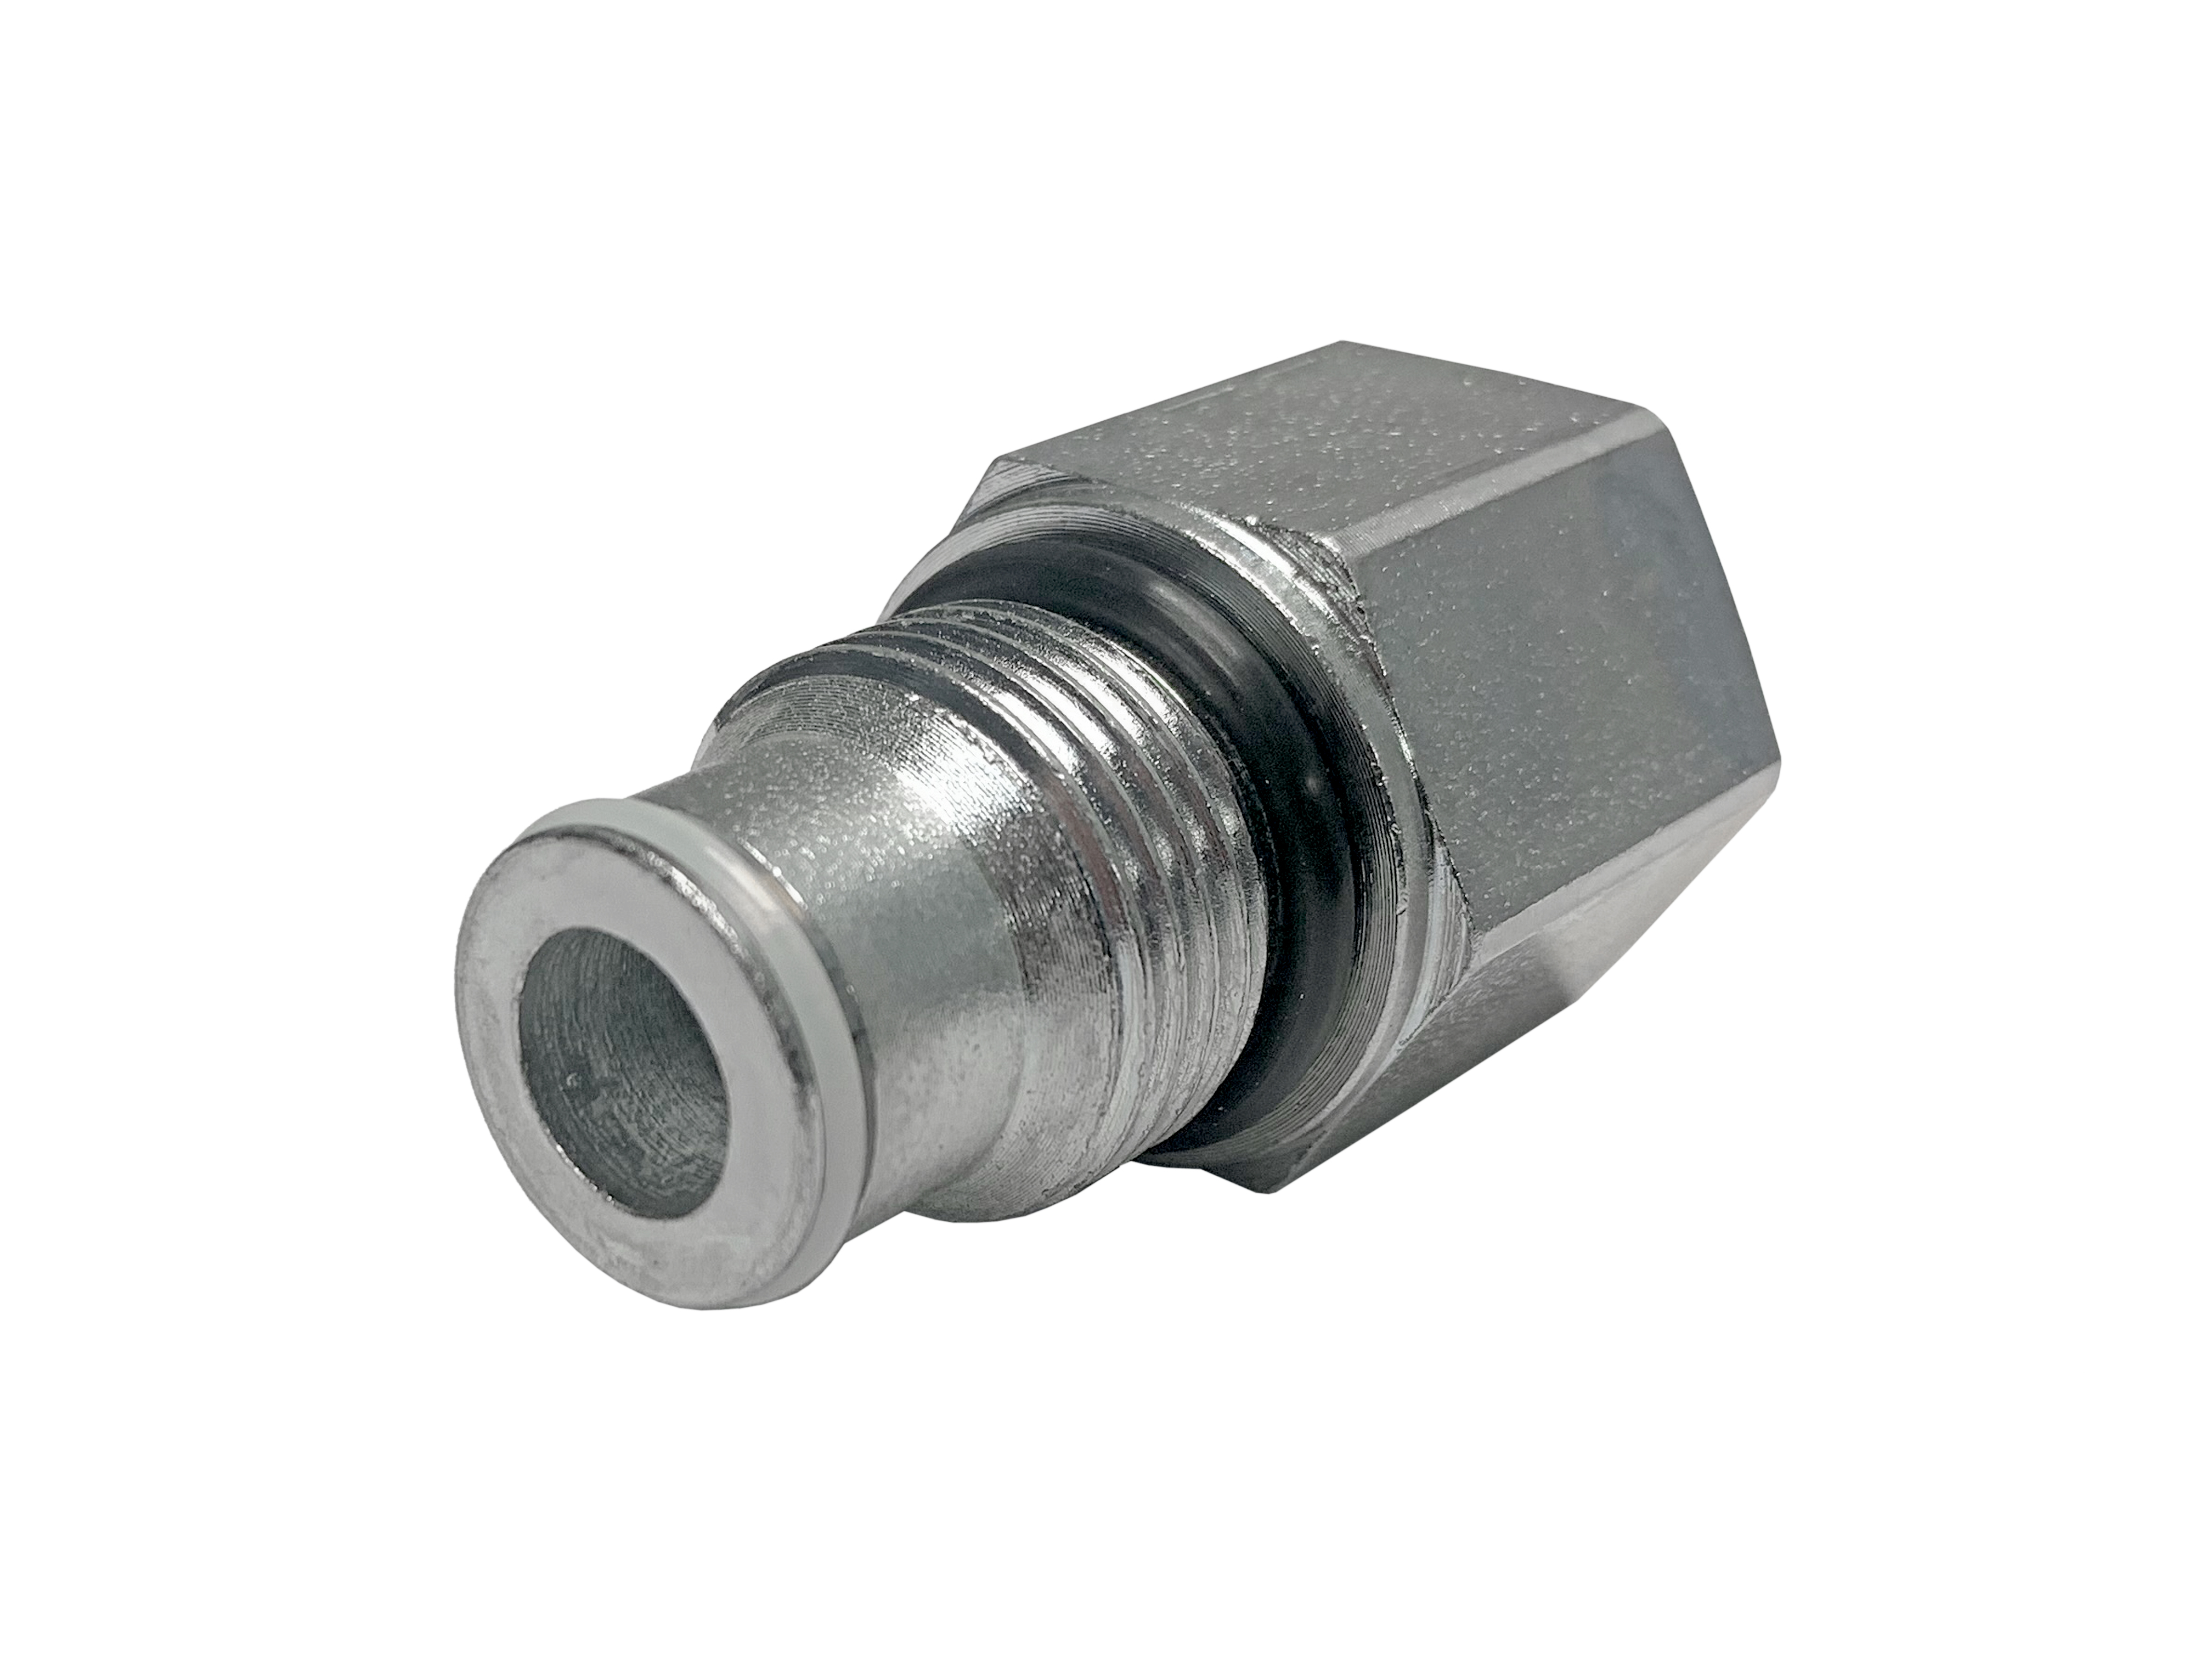 13 GPM power beyond adapter sleeve for hydraulic monoblock control valves